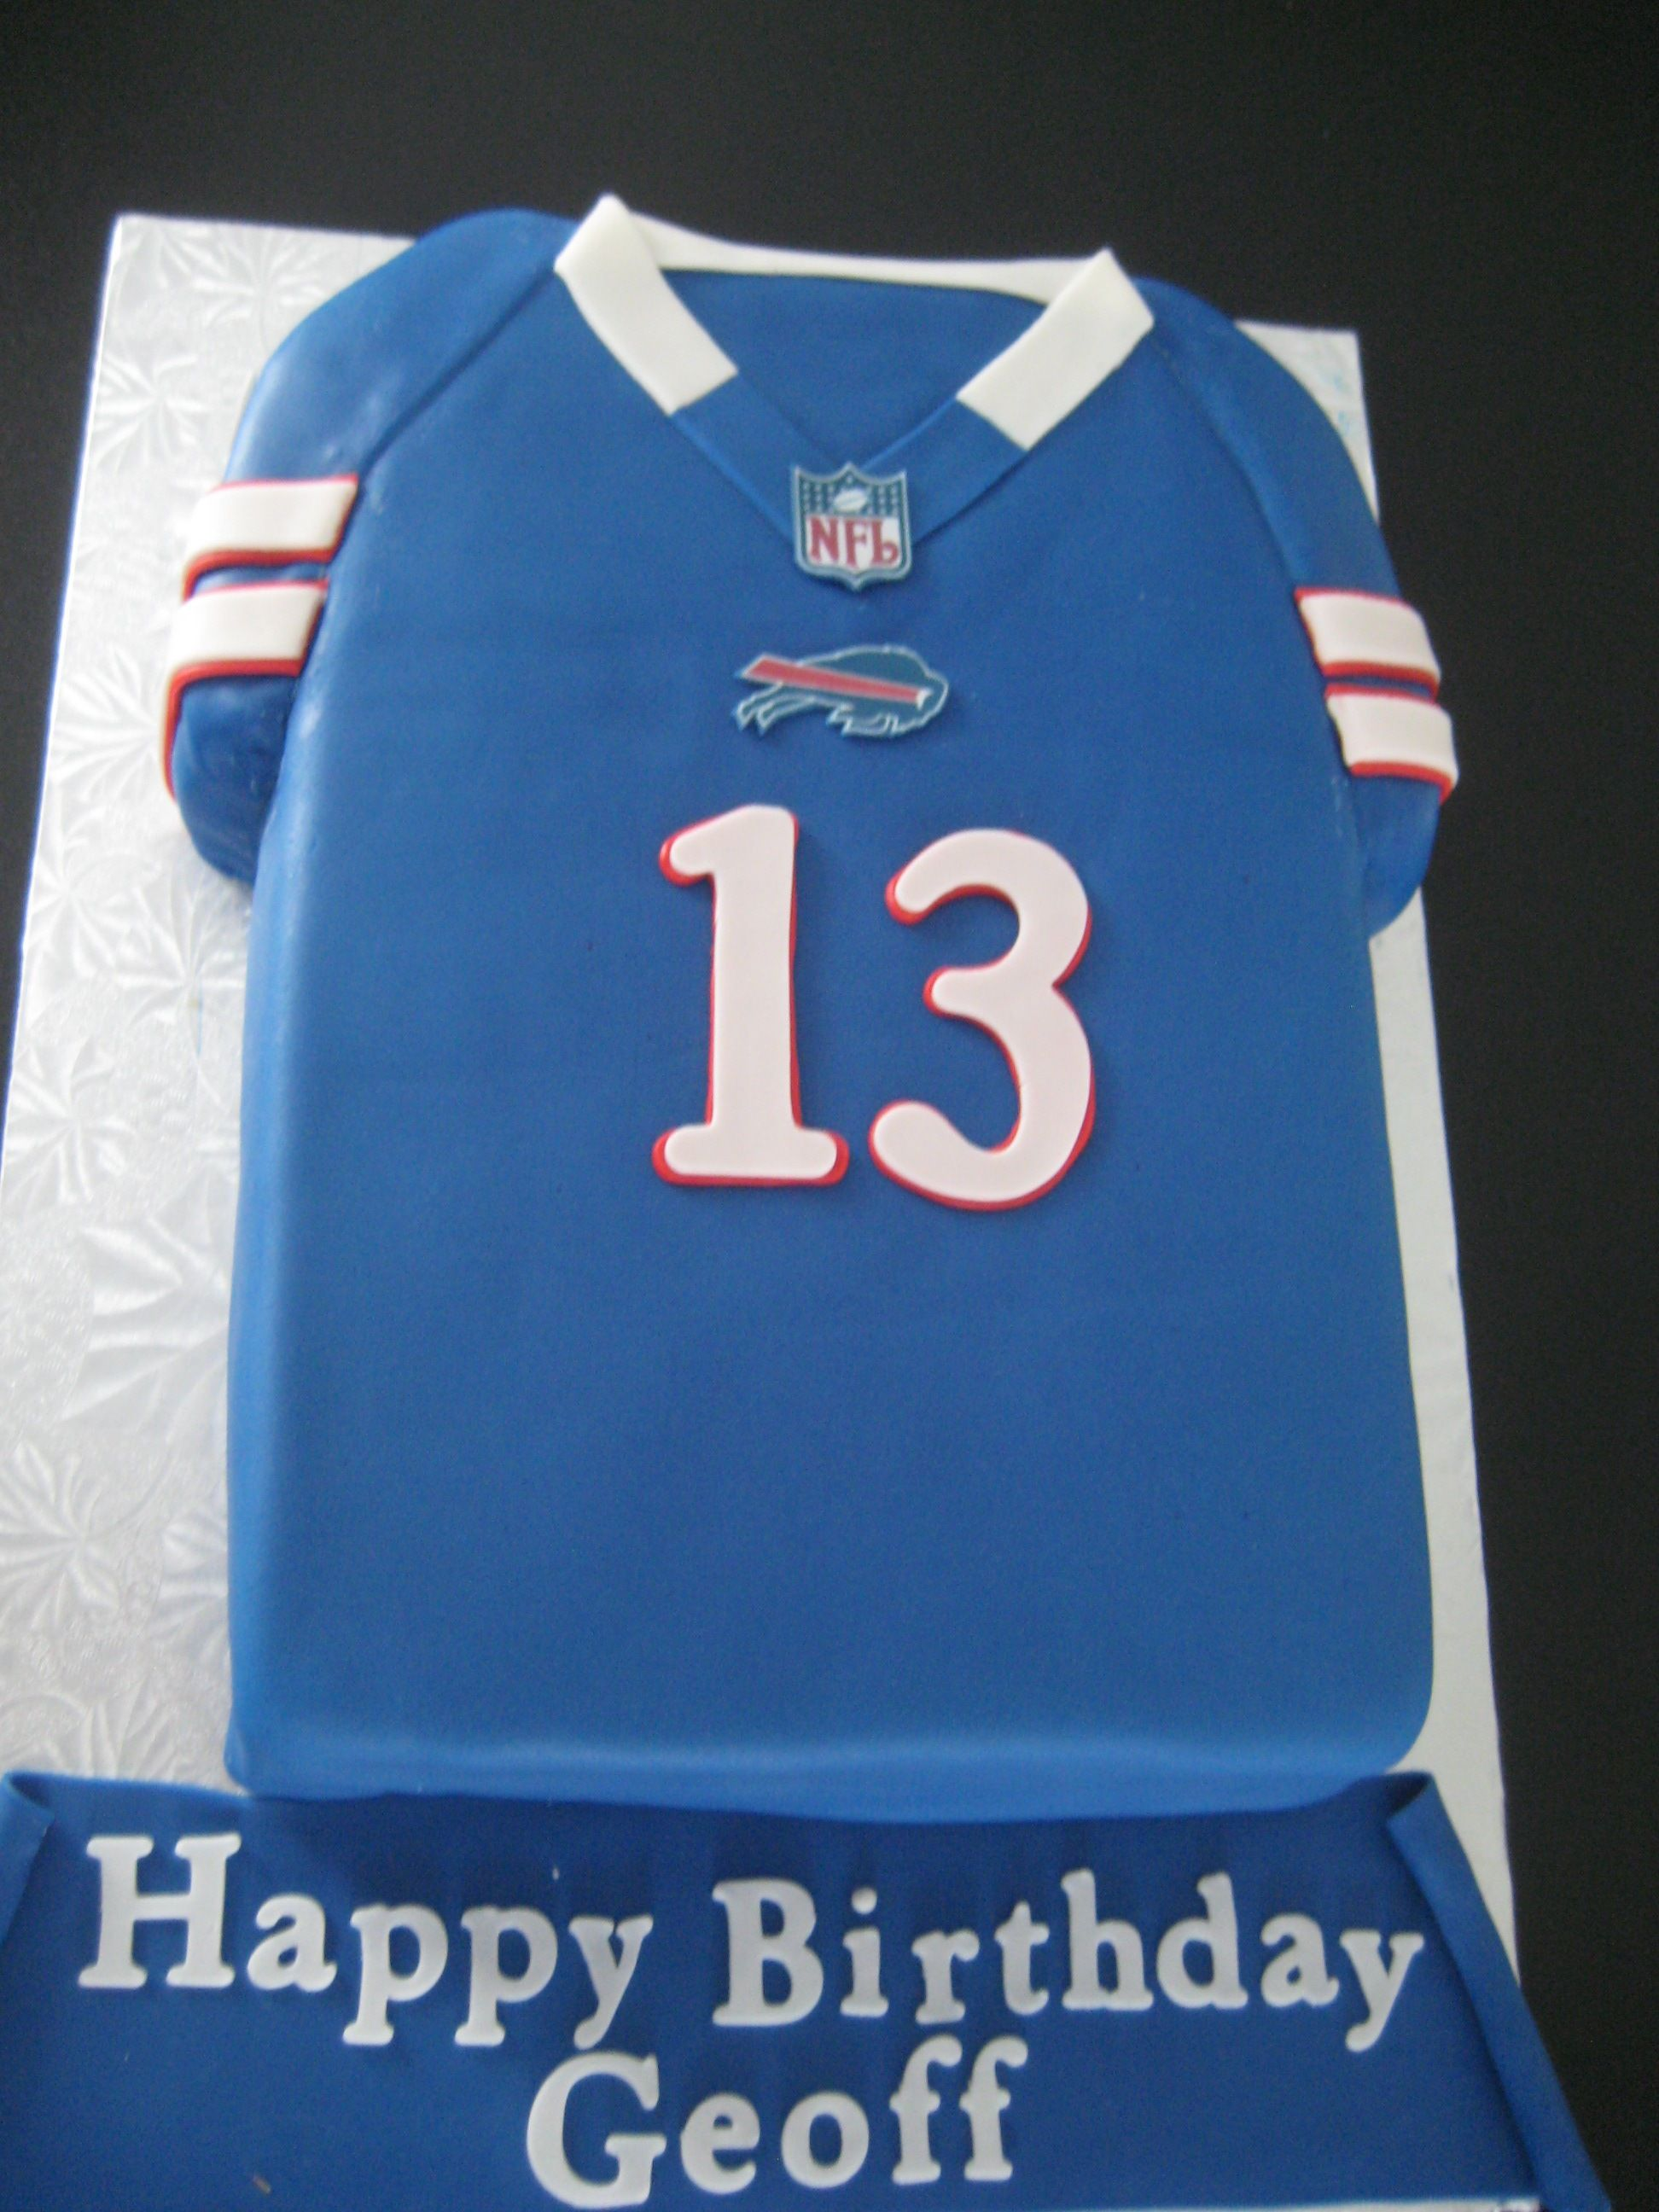 Buffalo Bills Jersey Cake Birthday Cakes Pinterest Buffalo - Buffalo birthday cake